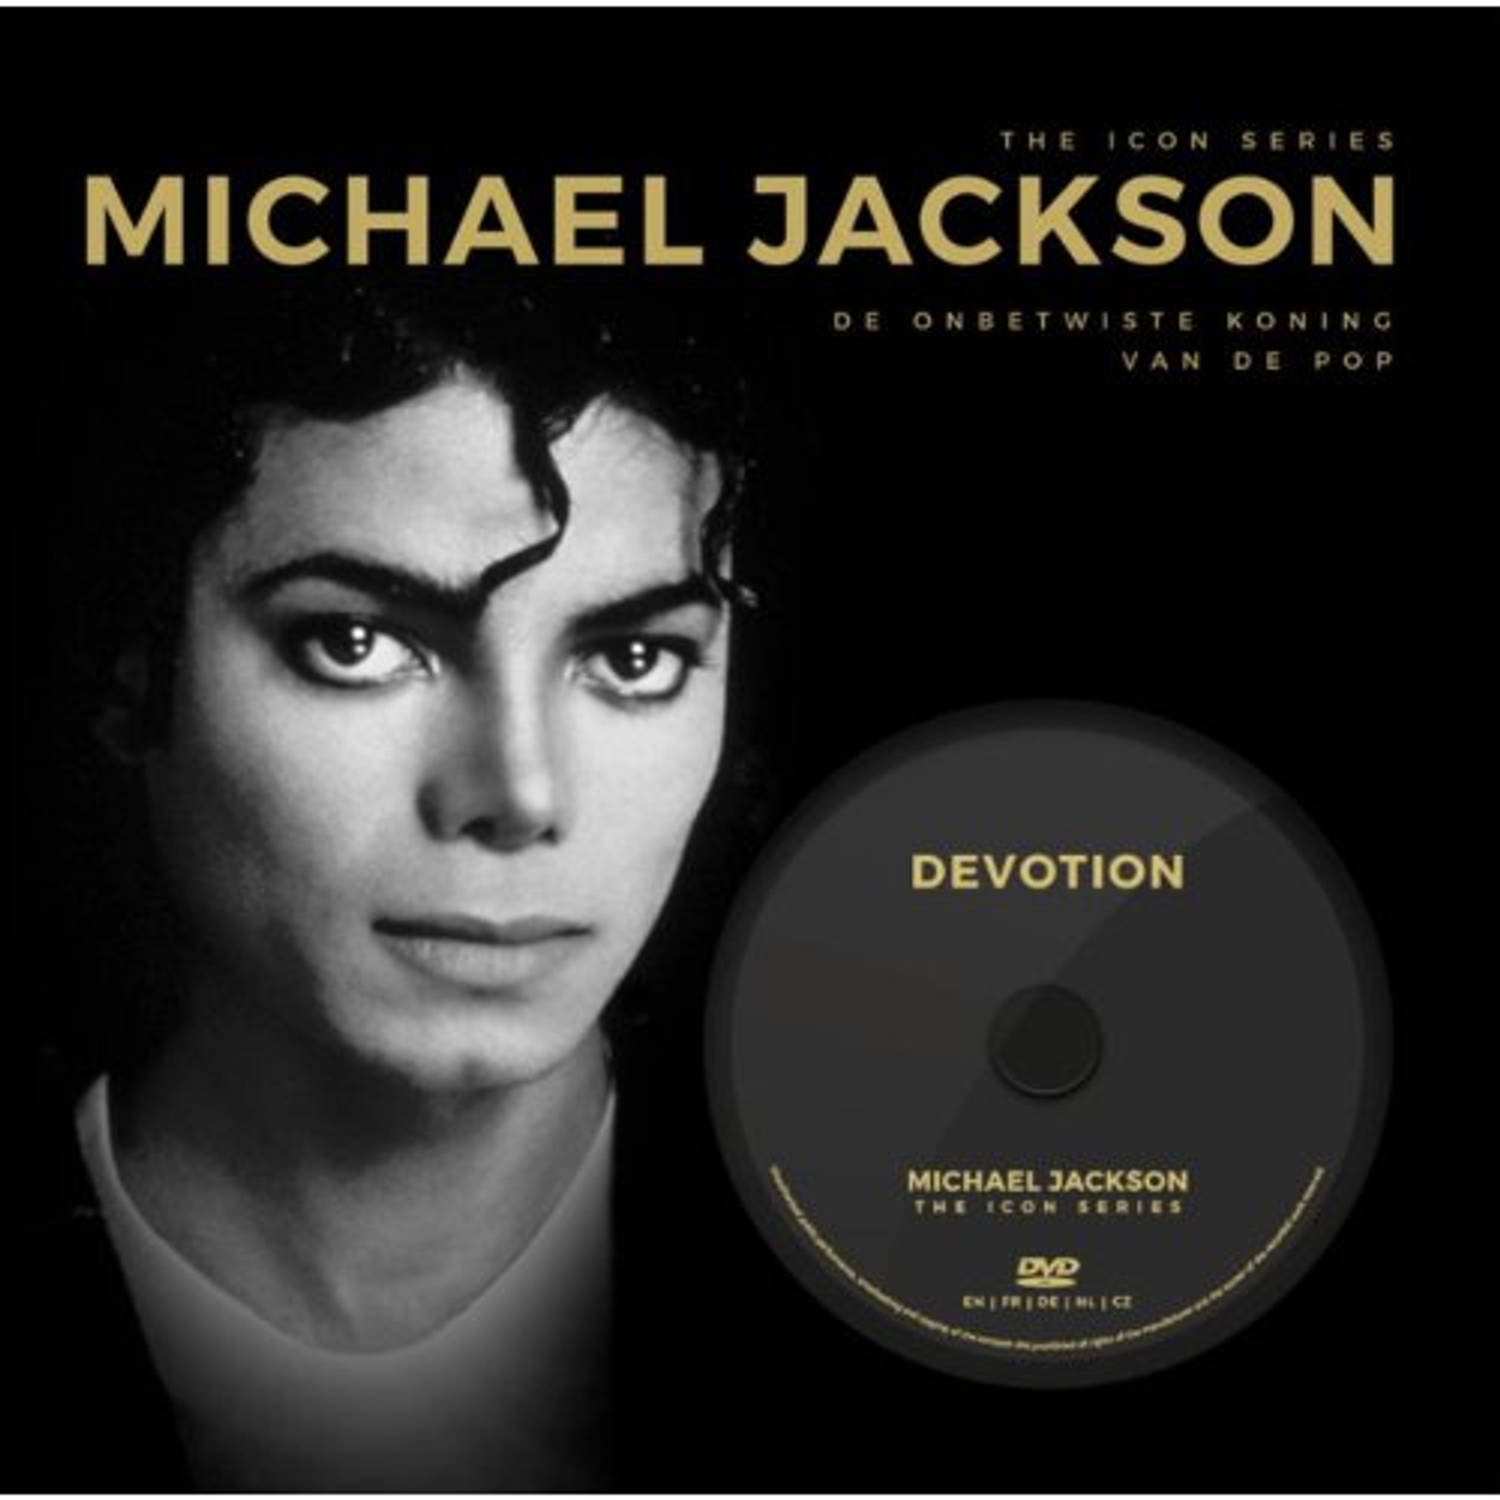 Michael Jackson - The Icon Series